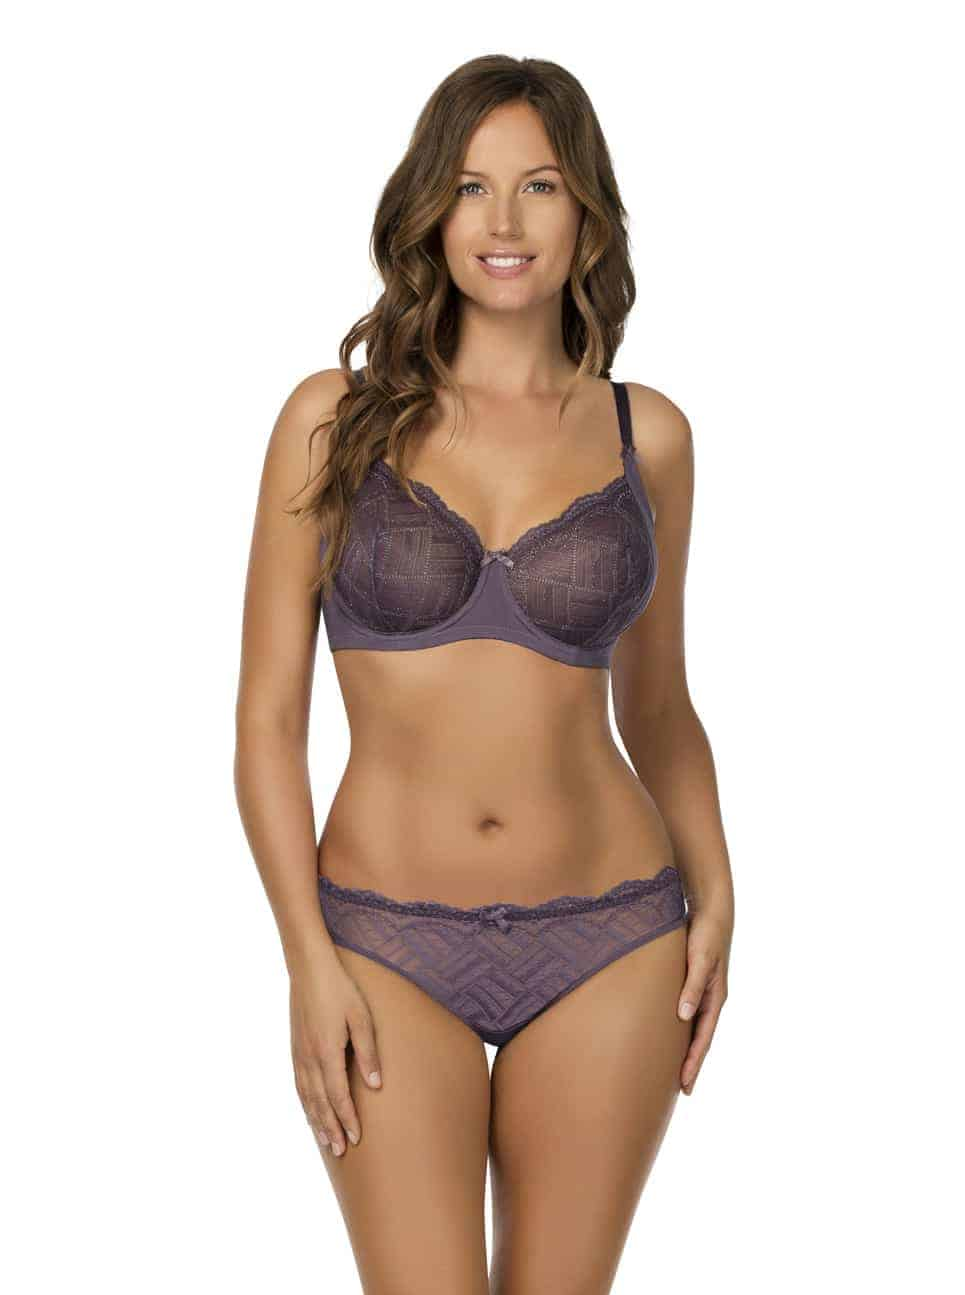 Lucie UnlinedWireBraP5202 BriefP5203 MoodIndigo 1 - Lucie Brief - Mood Indigo - P5203